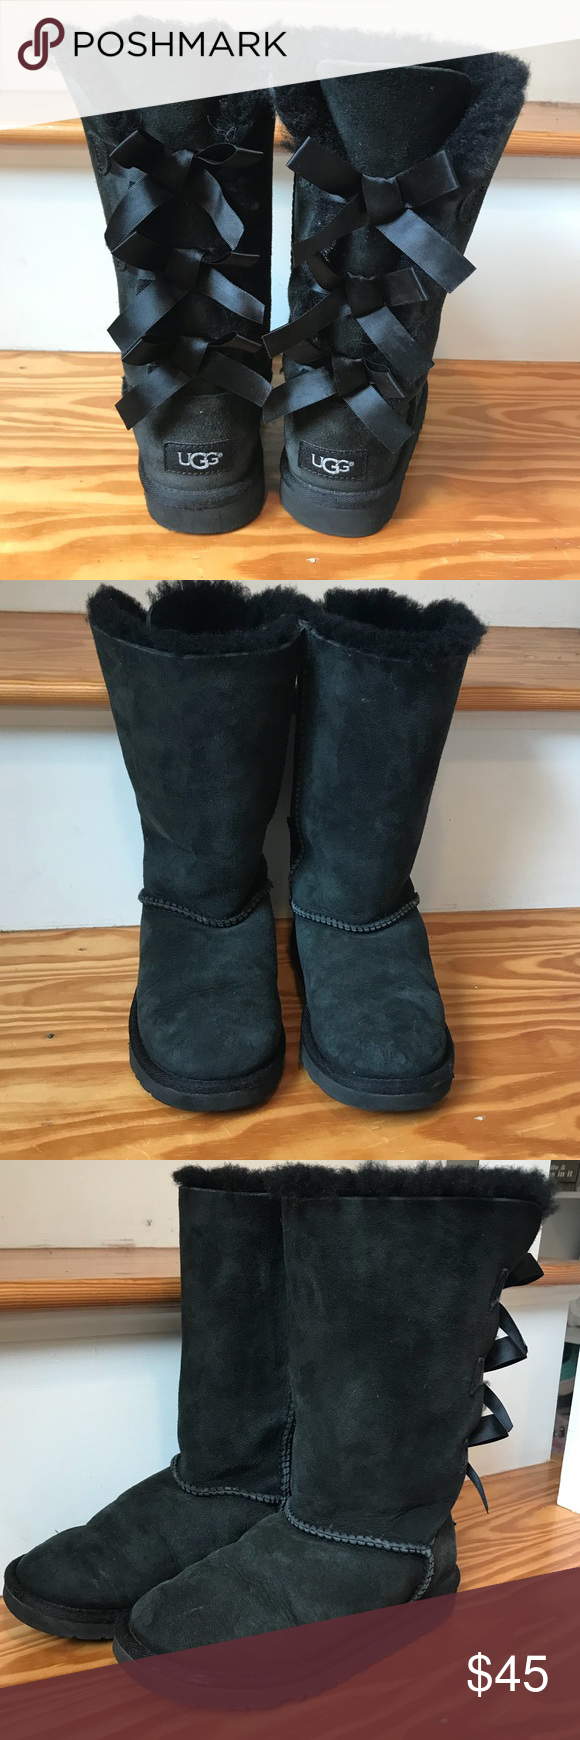 """Girls UGG boots Black-girls """"Bailey bow"""" UGG boots. 2 seasons old. Worn a handful of times. Great condition UGG Shoes Boots #uggbootsoutfitblackgirl Girls UGG boots Black-girls """"Bailey bow"""" UGG boots. 2 seasons old. Worn a handful of times. Great condition UGG Shoes Boots #uggbootsoutfitblackgirl"""